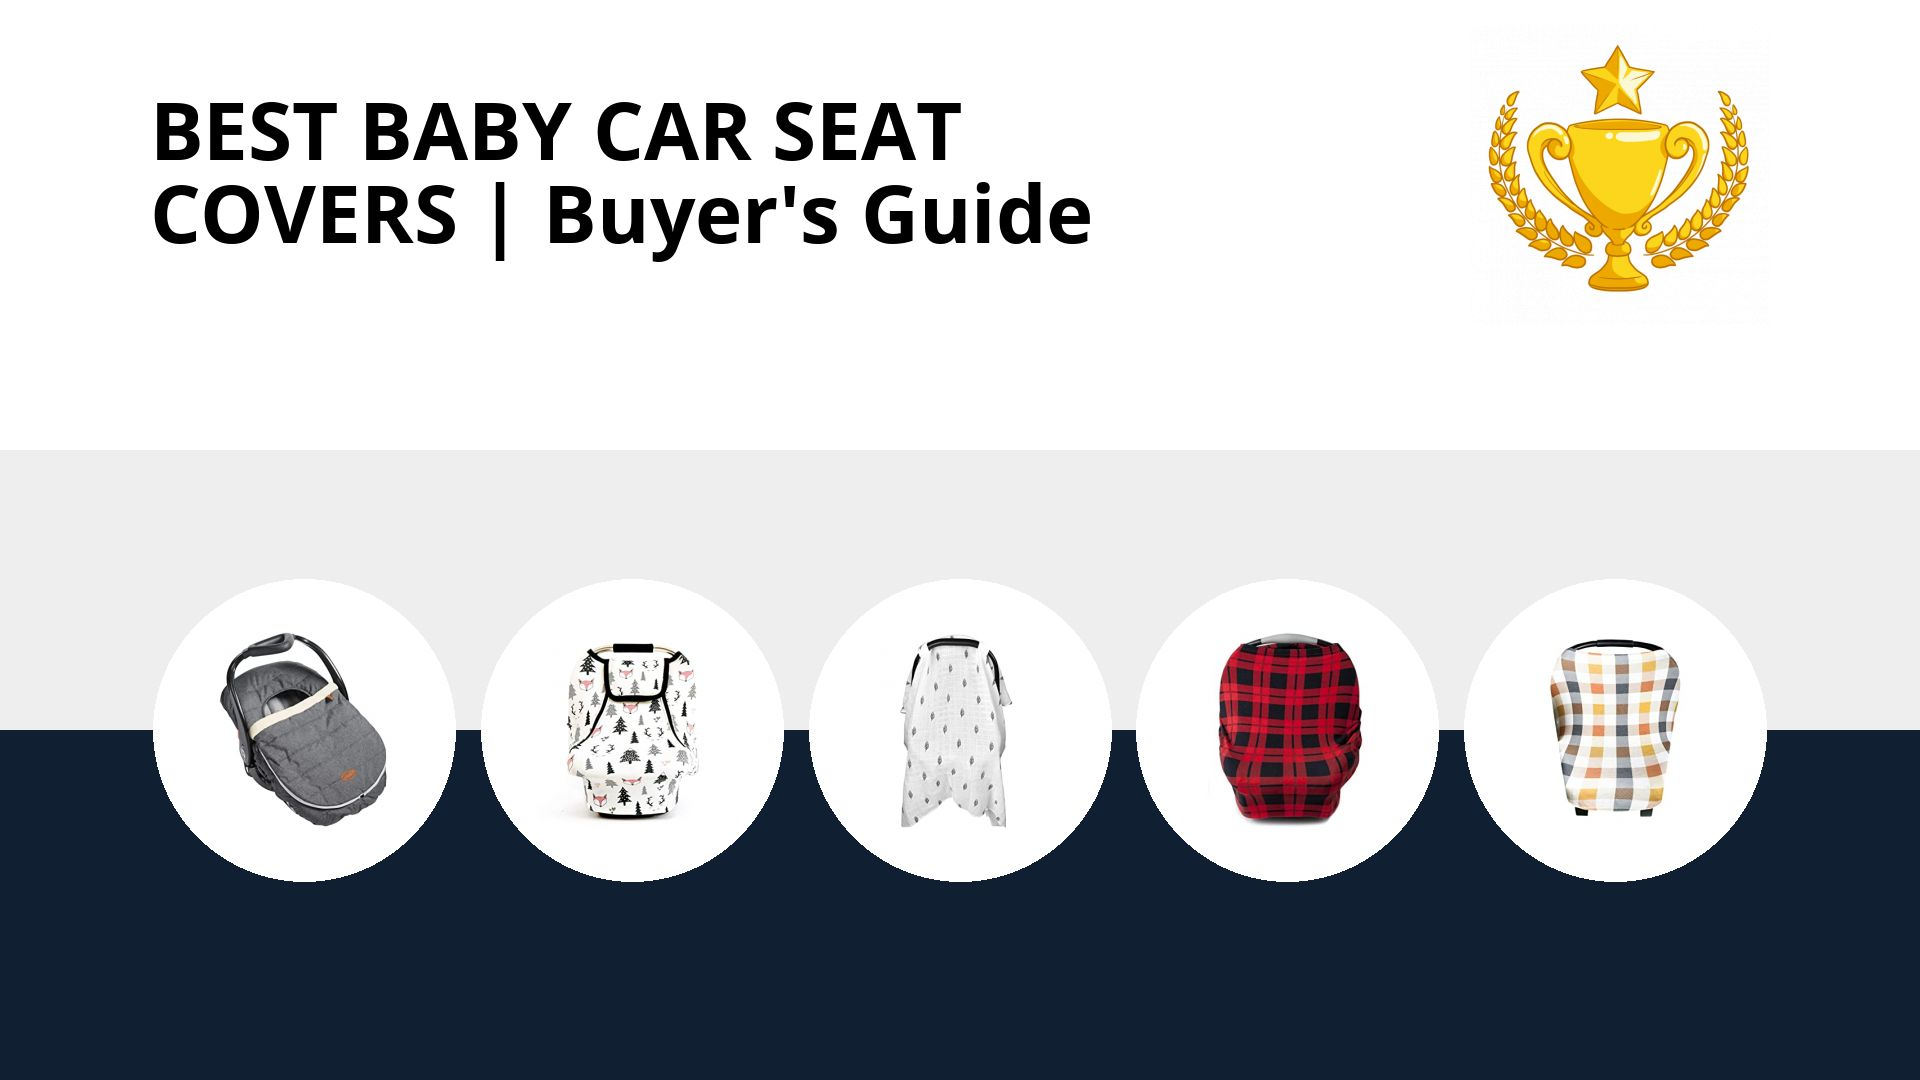 Best Baby Car Seat Covers: image